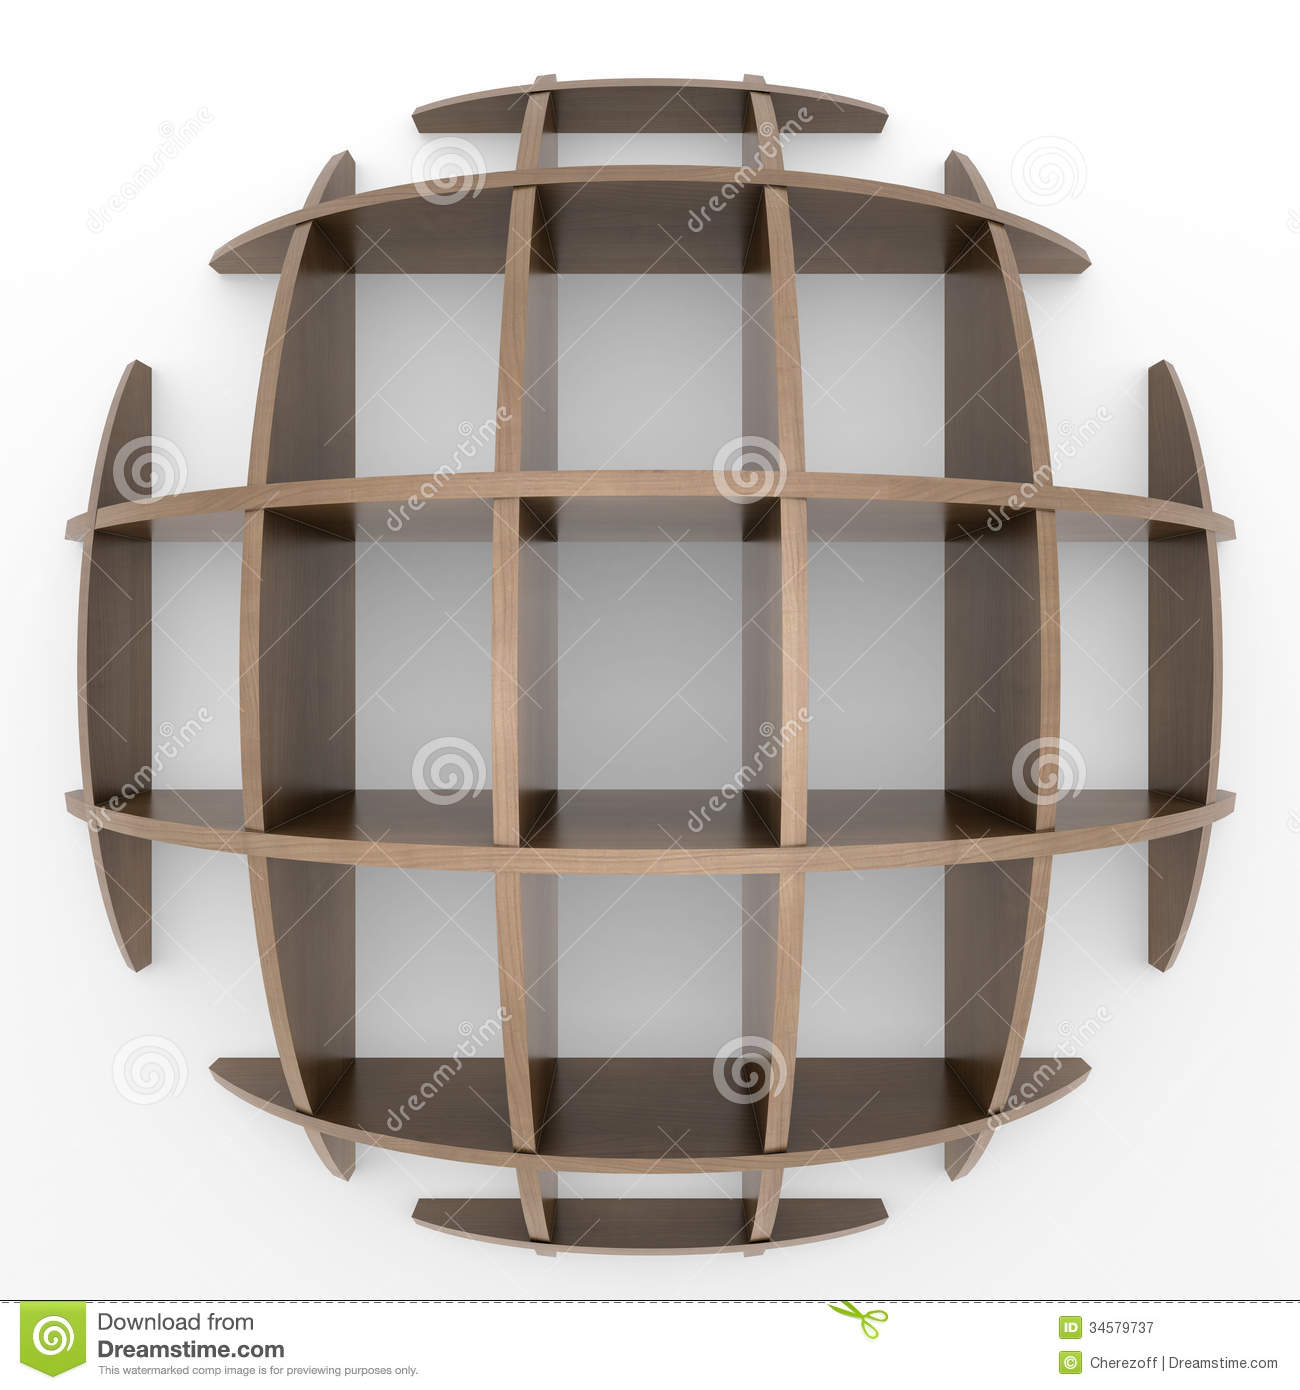 Shelves In The Shape Of A Circle Royalty Free Stock Photography - Image: 34579737